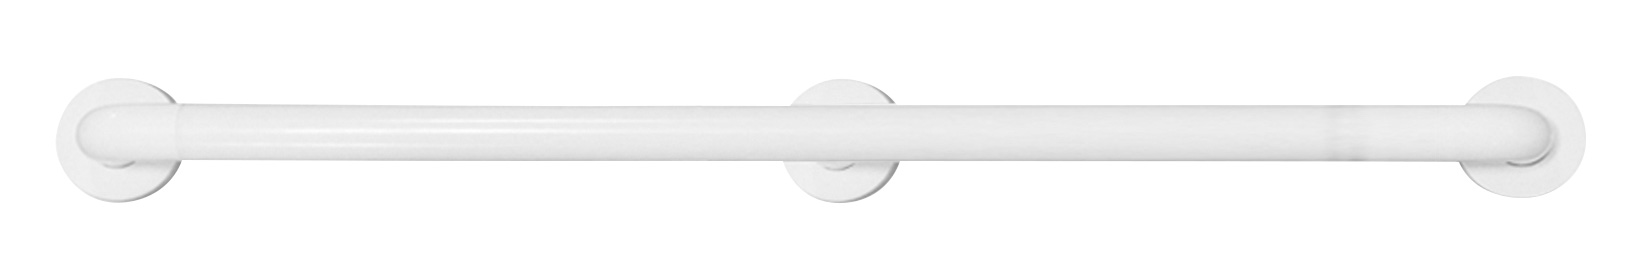 GIAMPIERI 1200mm Straight Grab Bar